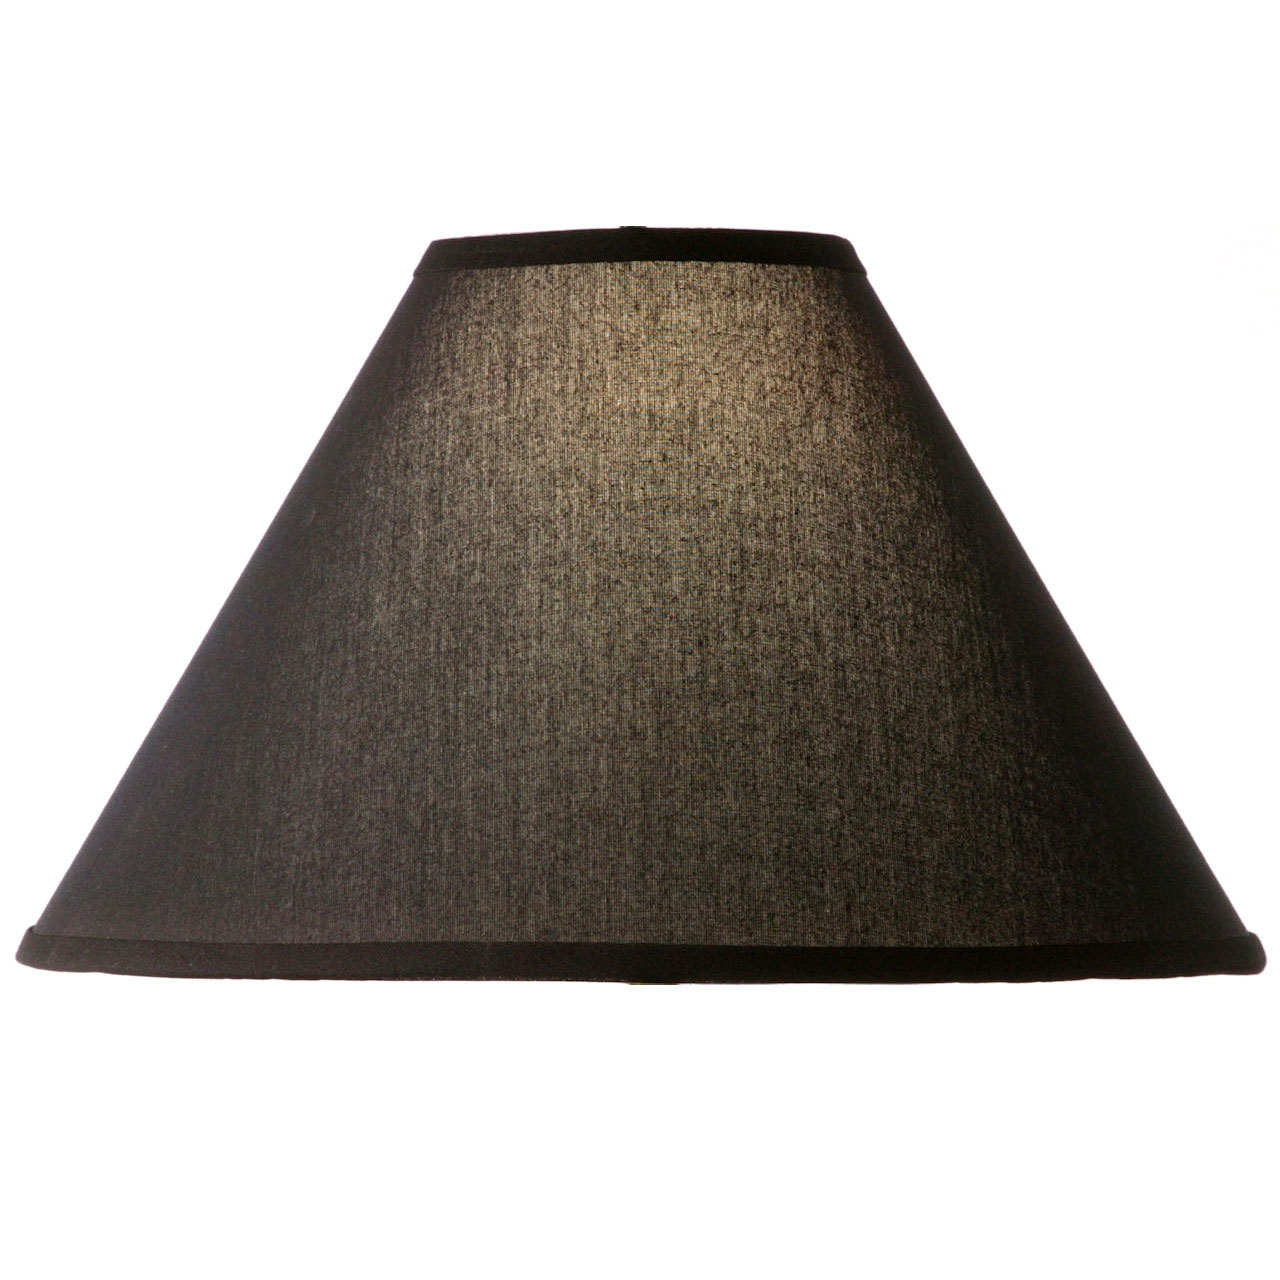 Natural Black Linen Floor Lamp Shade 18